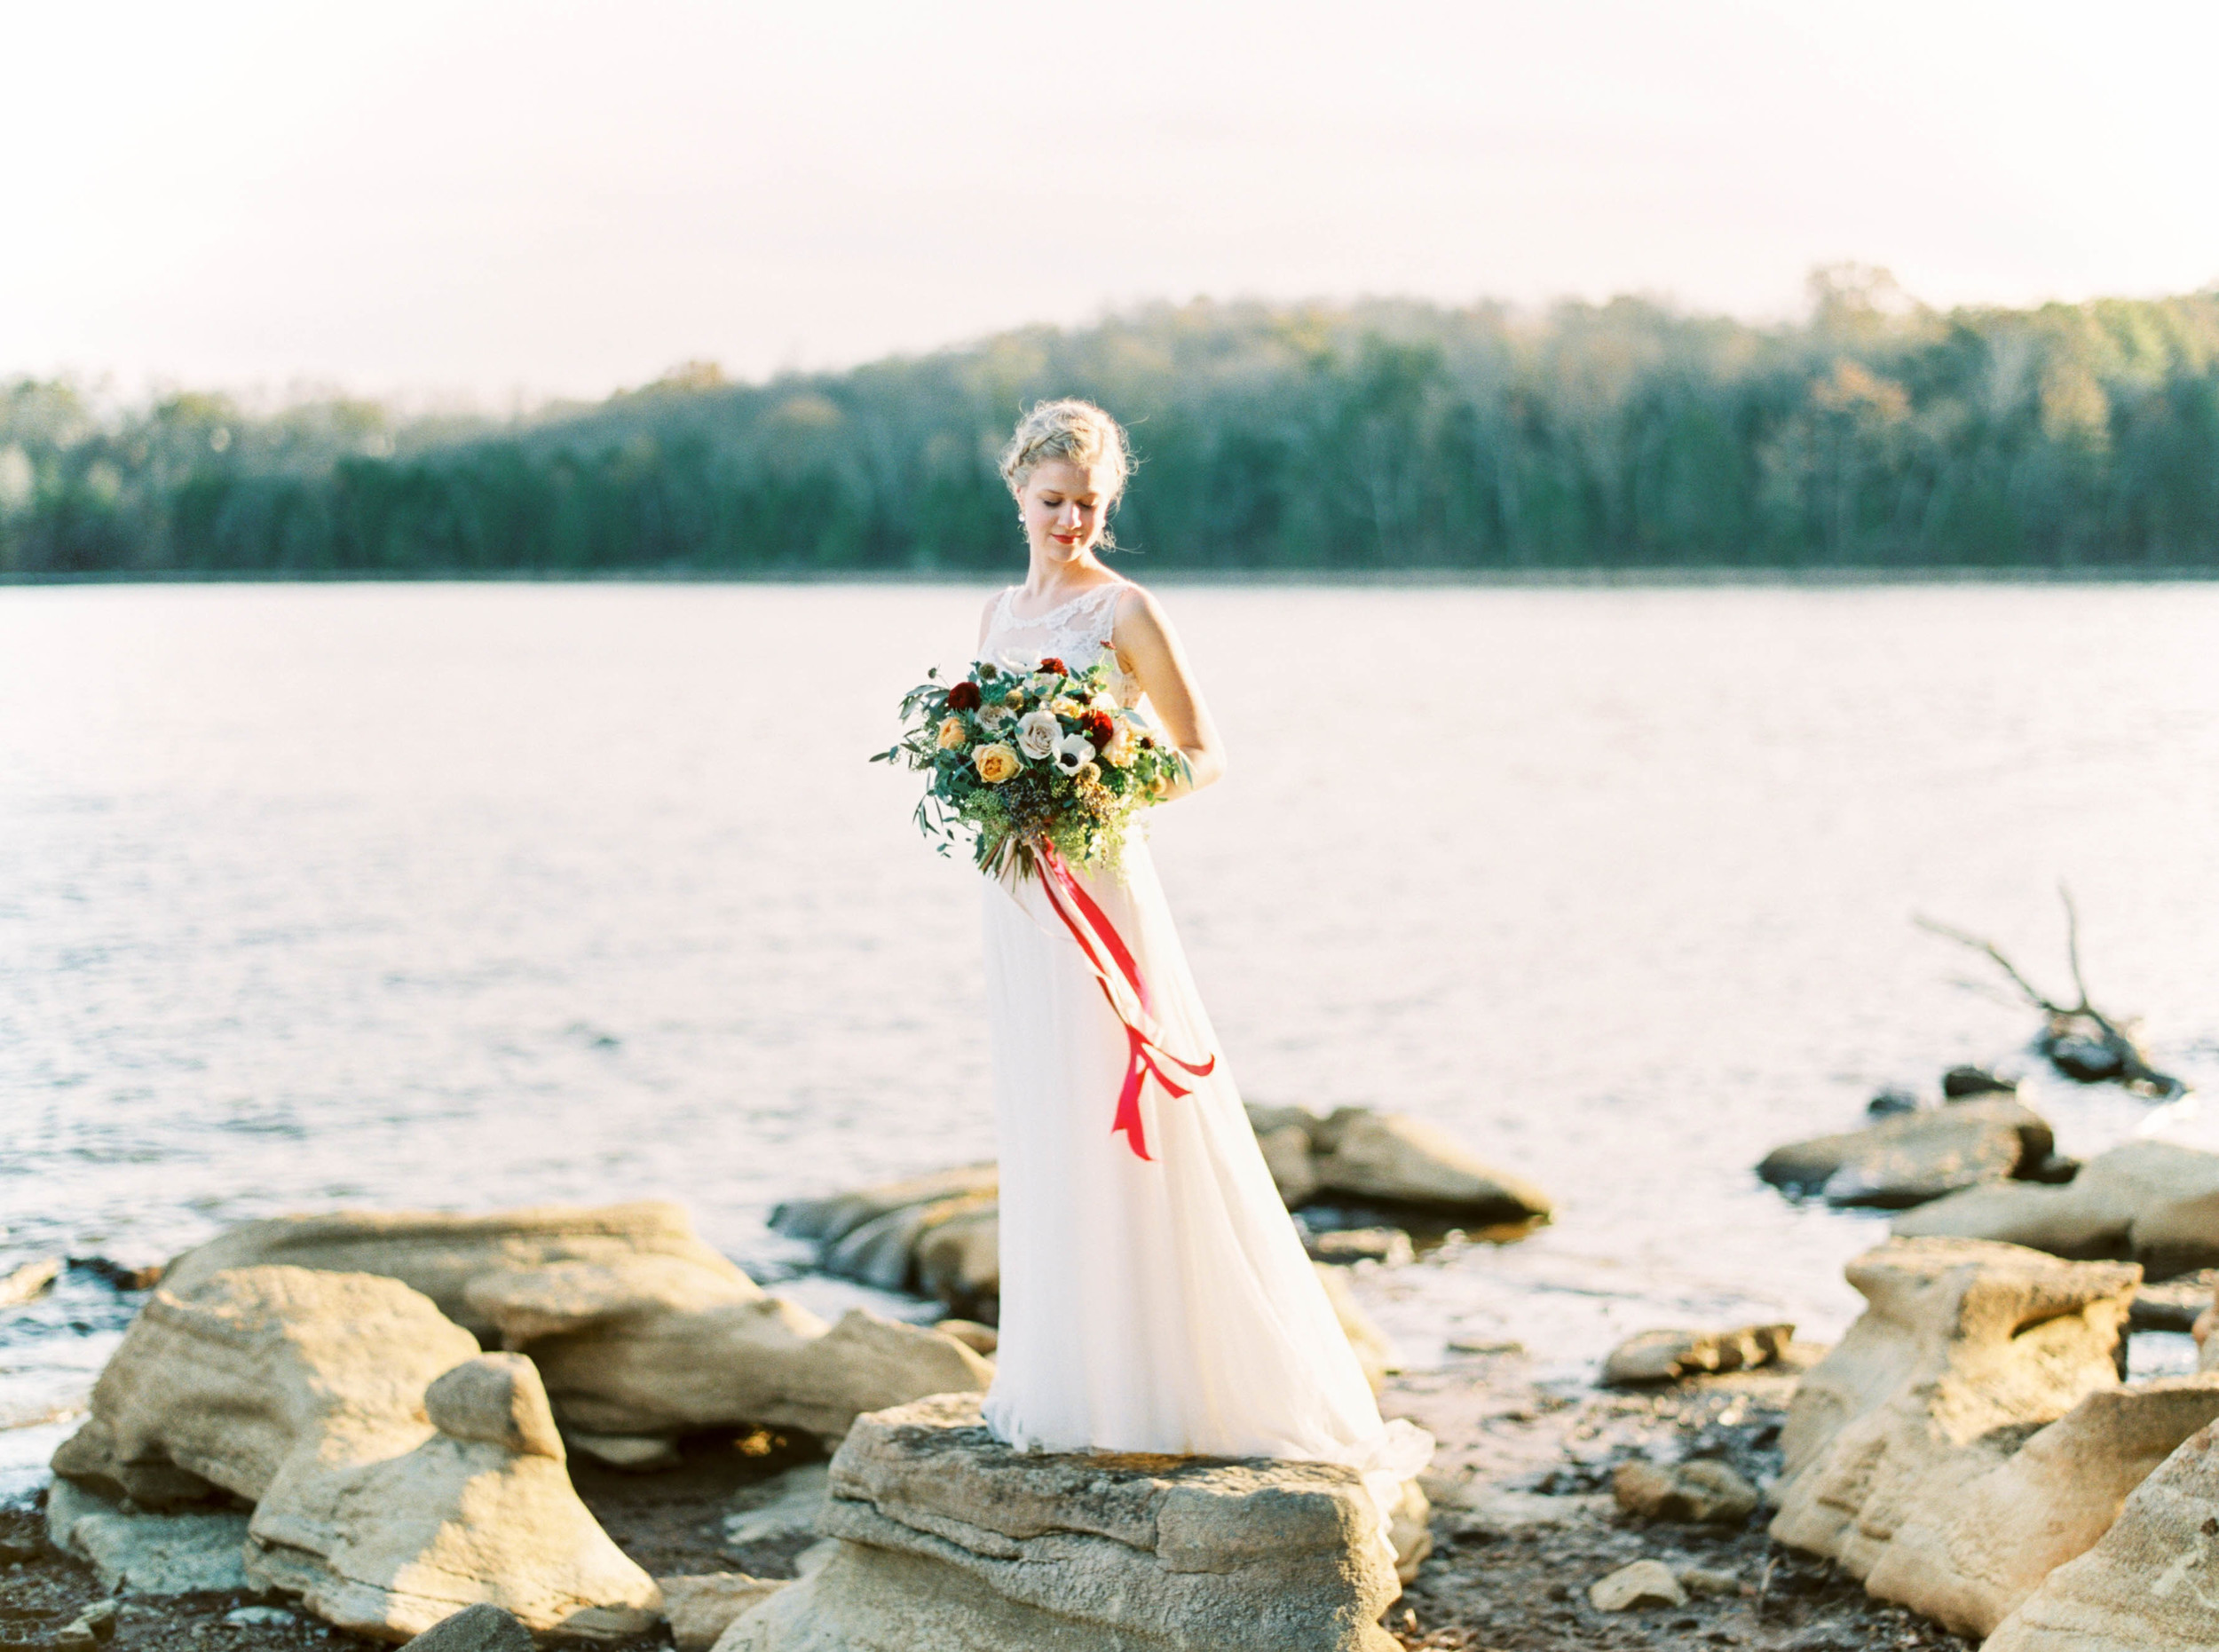 Lakeside Wedding Inspiration // Loose, natural bridal bouquet with cranberry and blush silk ribbon